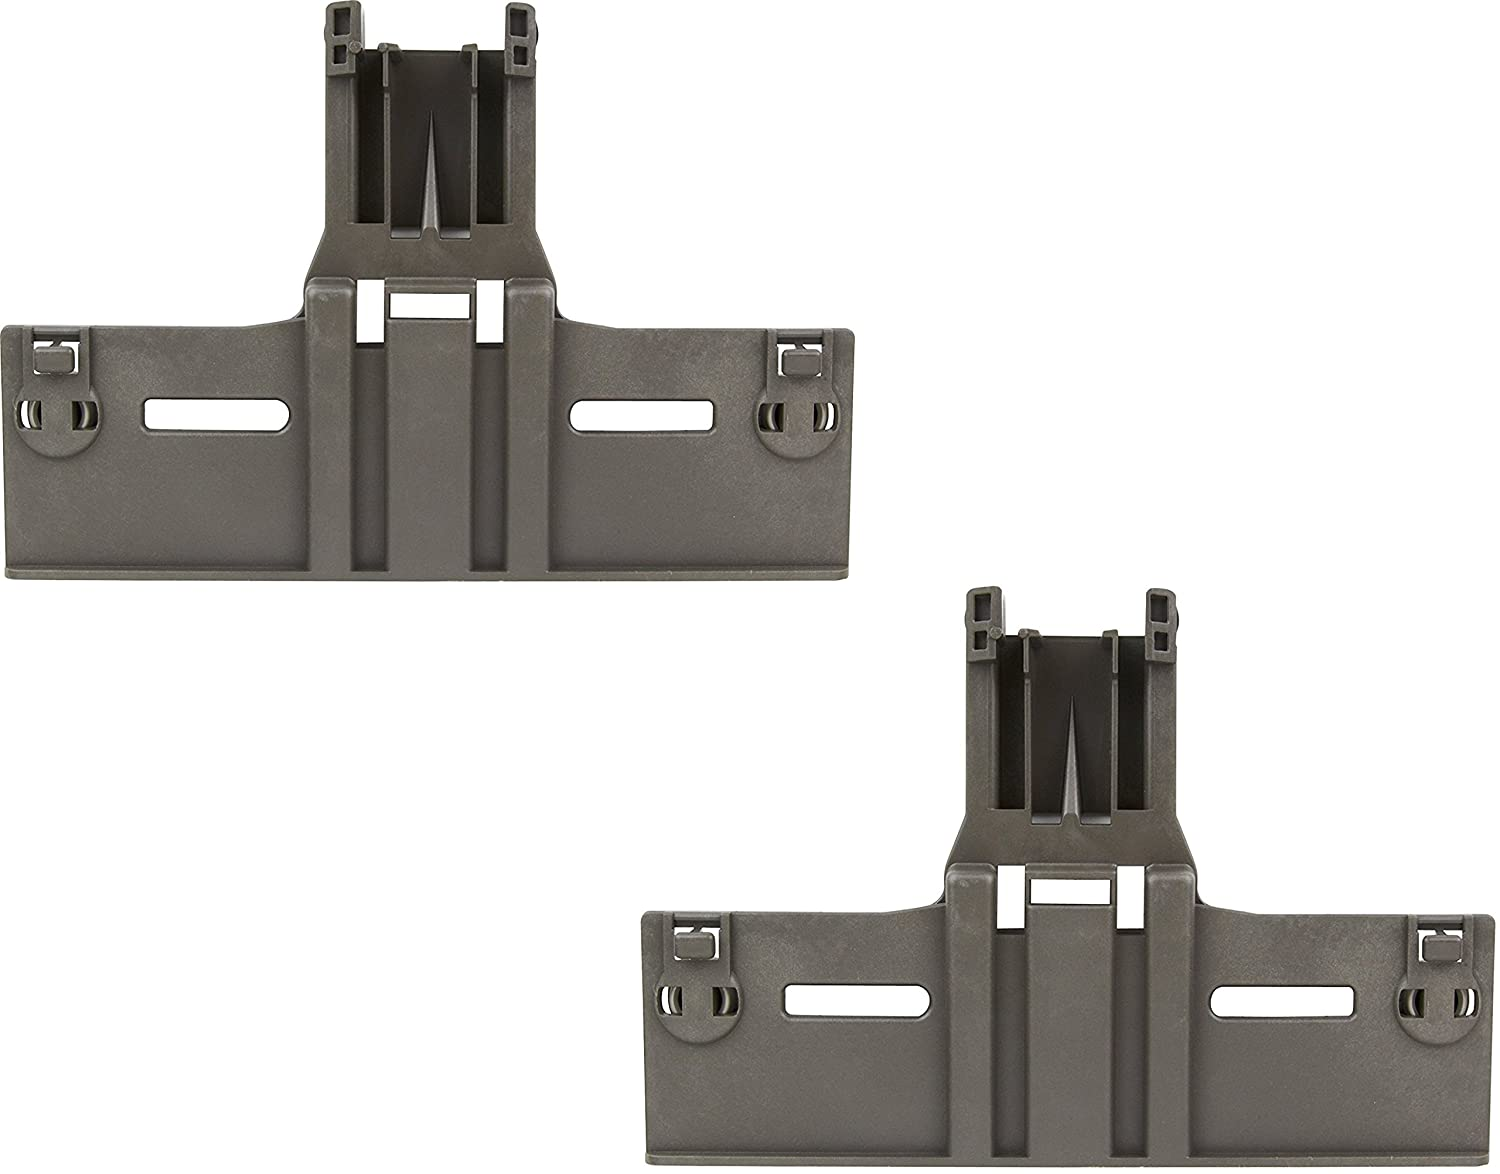 (2 PACK) W10350376 Upper Rack Adjuster for Whirlpool, KitchenAid Dishwasher